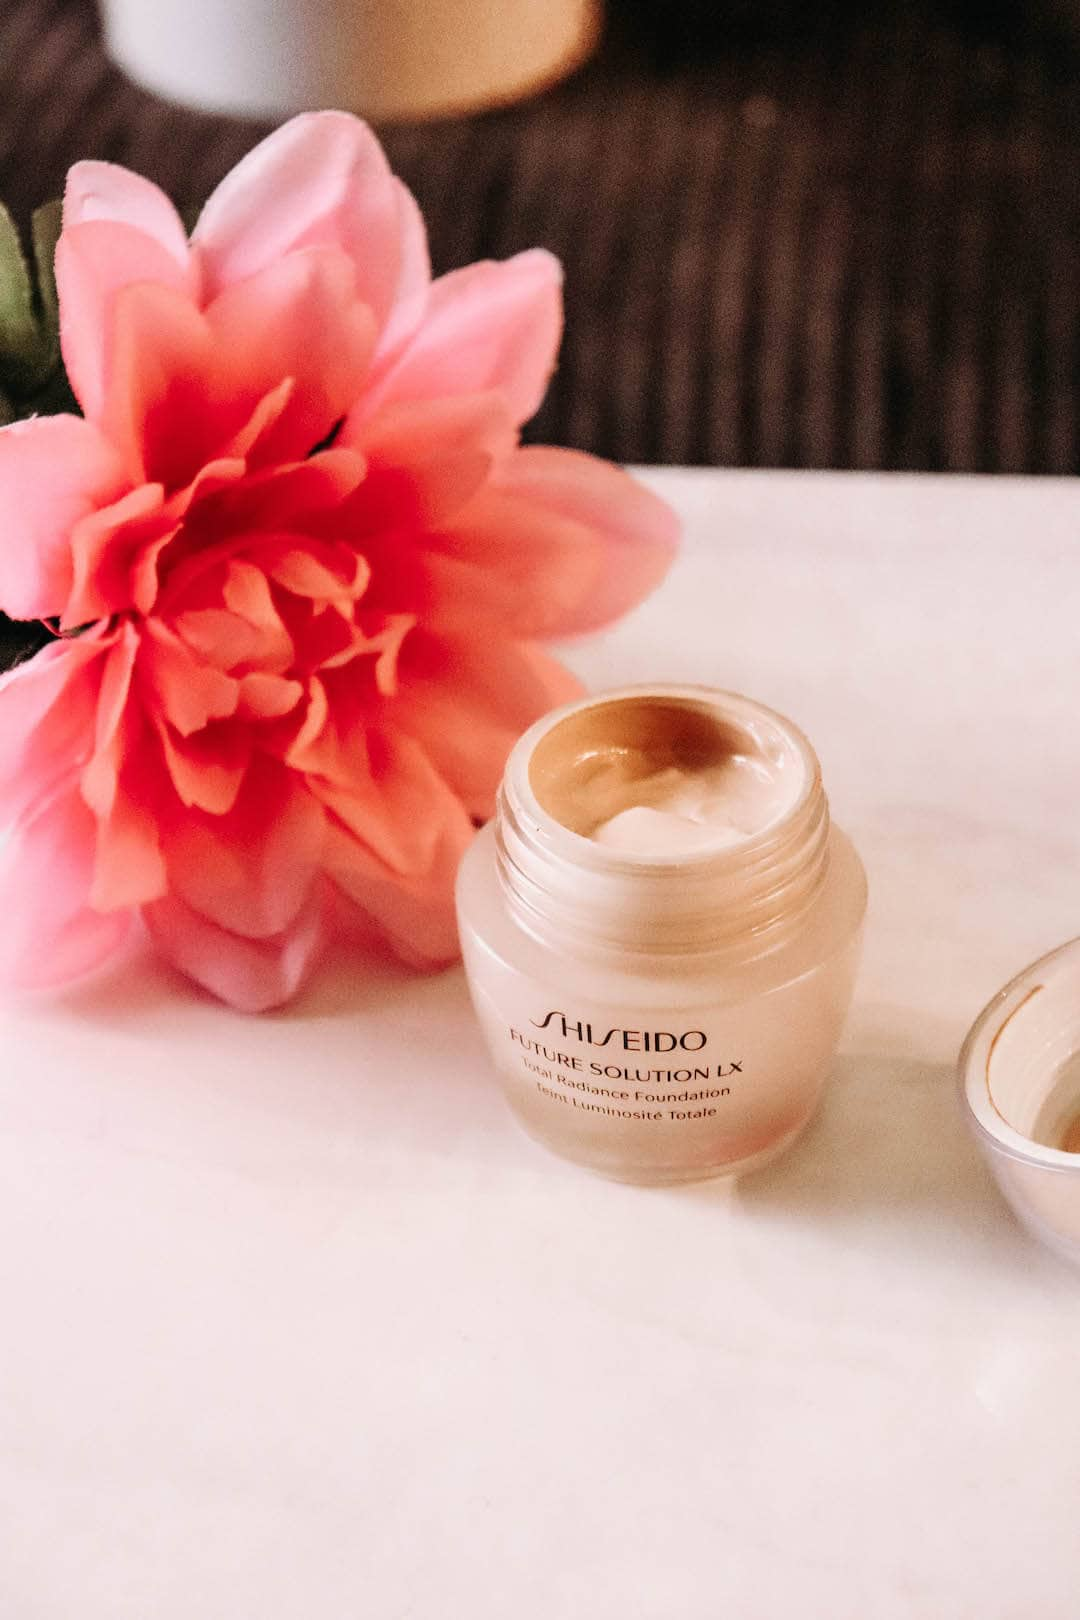 Shiseido Future Solution LX Total Radiance Foundation Review